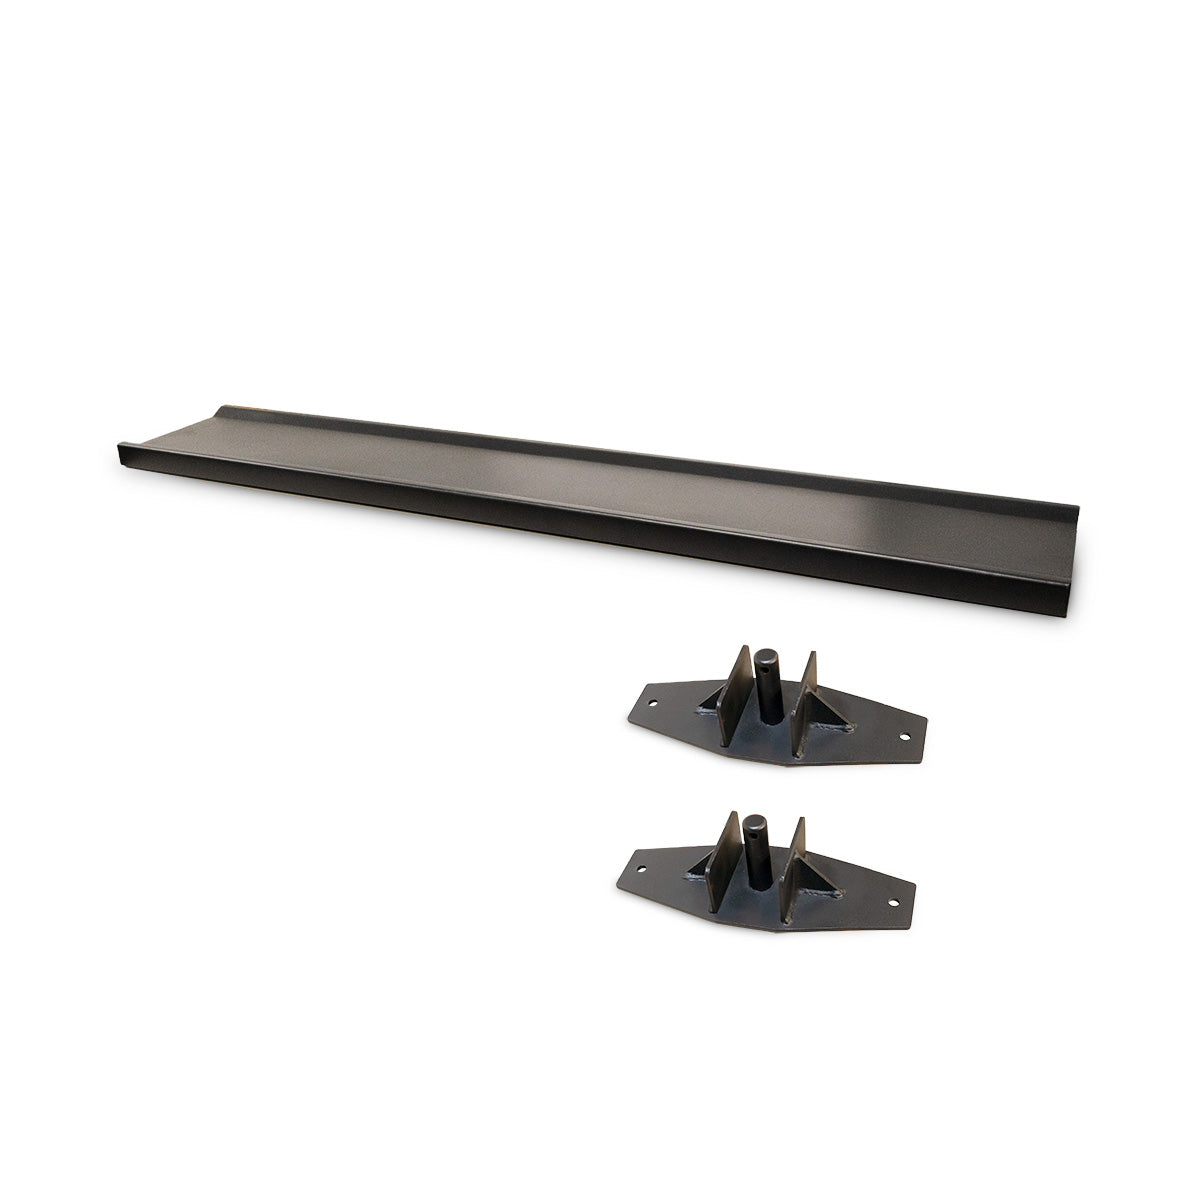 X-Frame - Flat Shelf & Bracket